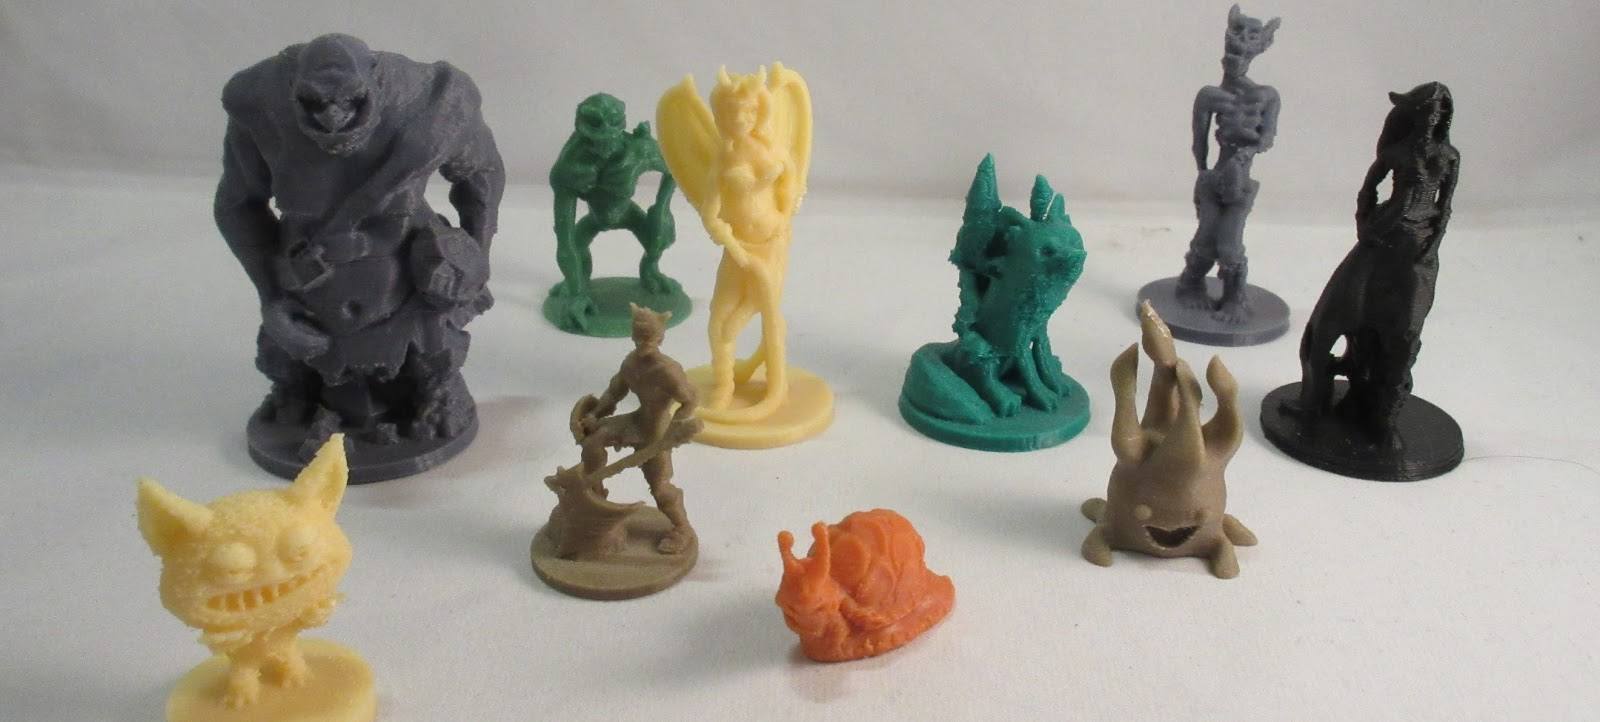 Joseph Larson is creating 3D Printing Models and YouTube